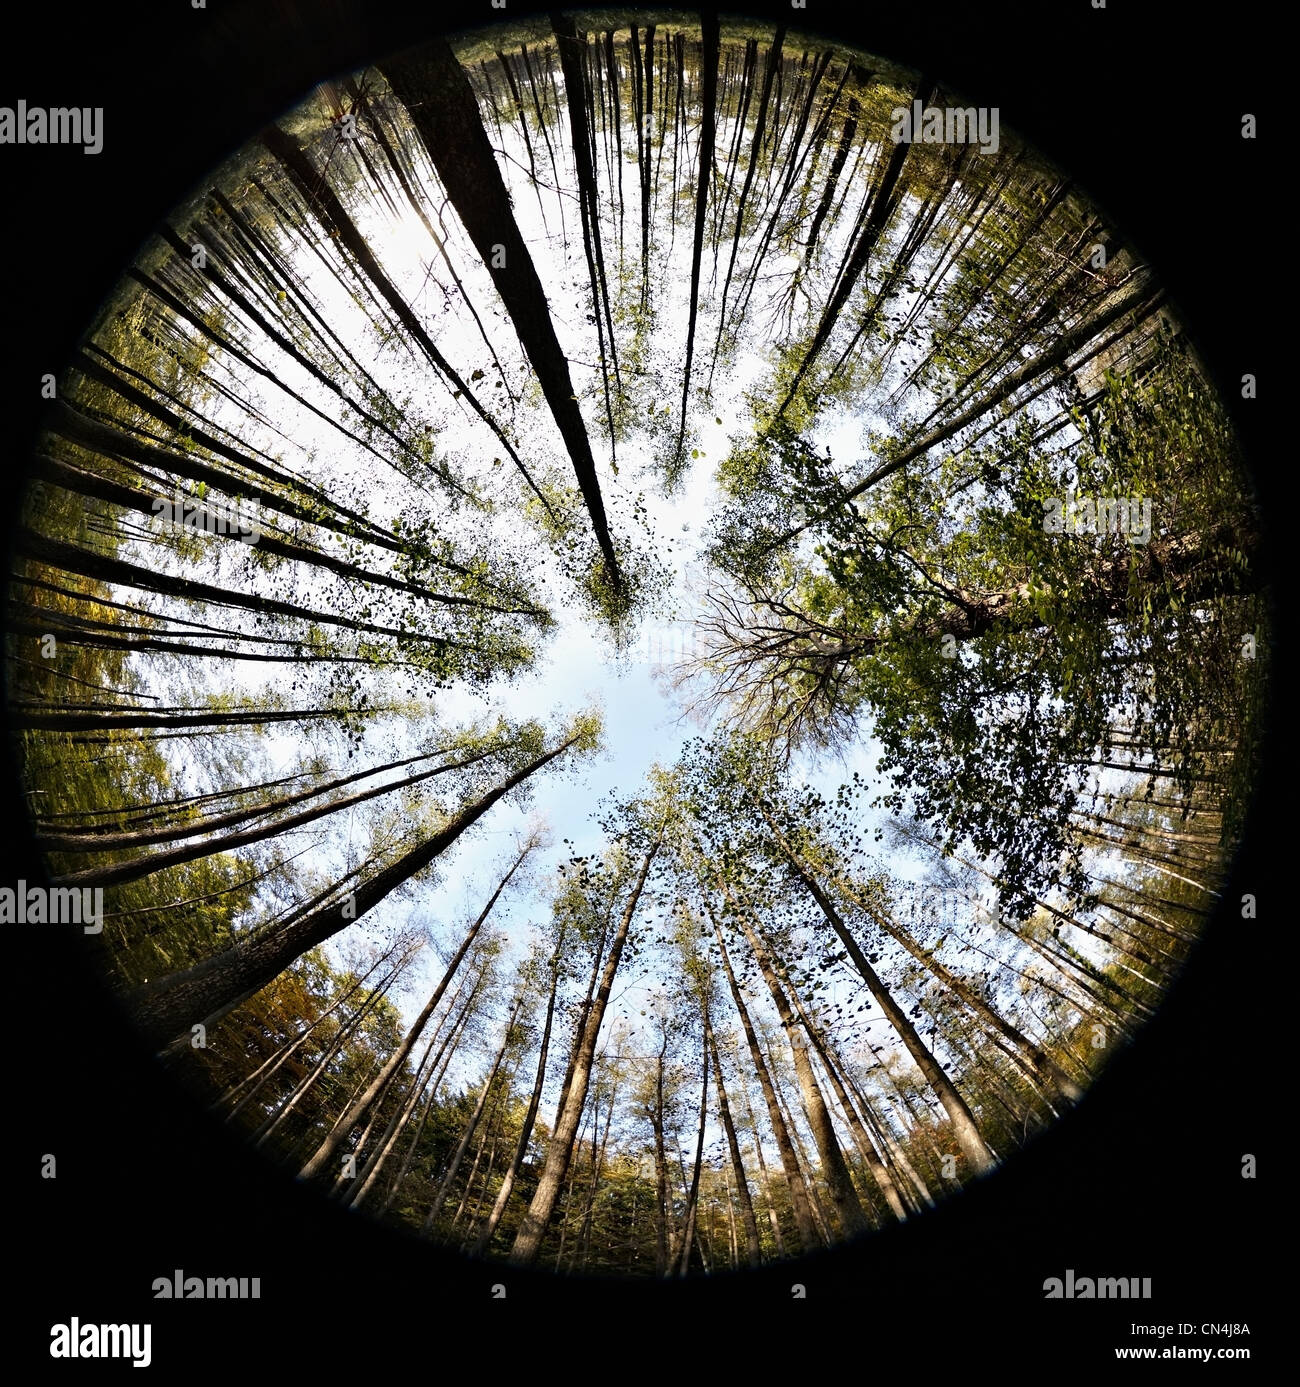 Fisheye view of forest - Stock Image